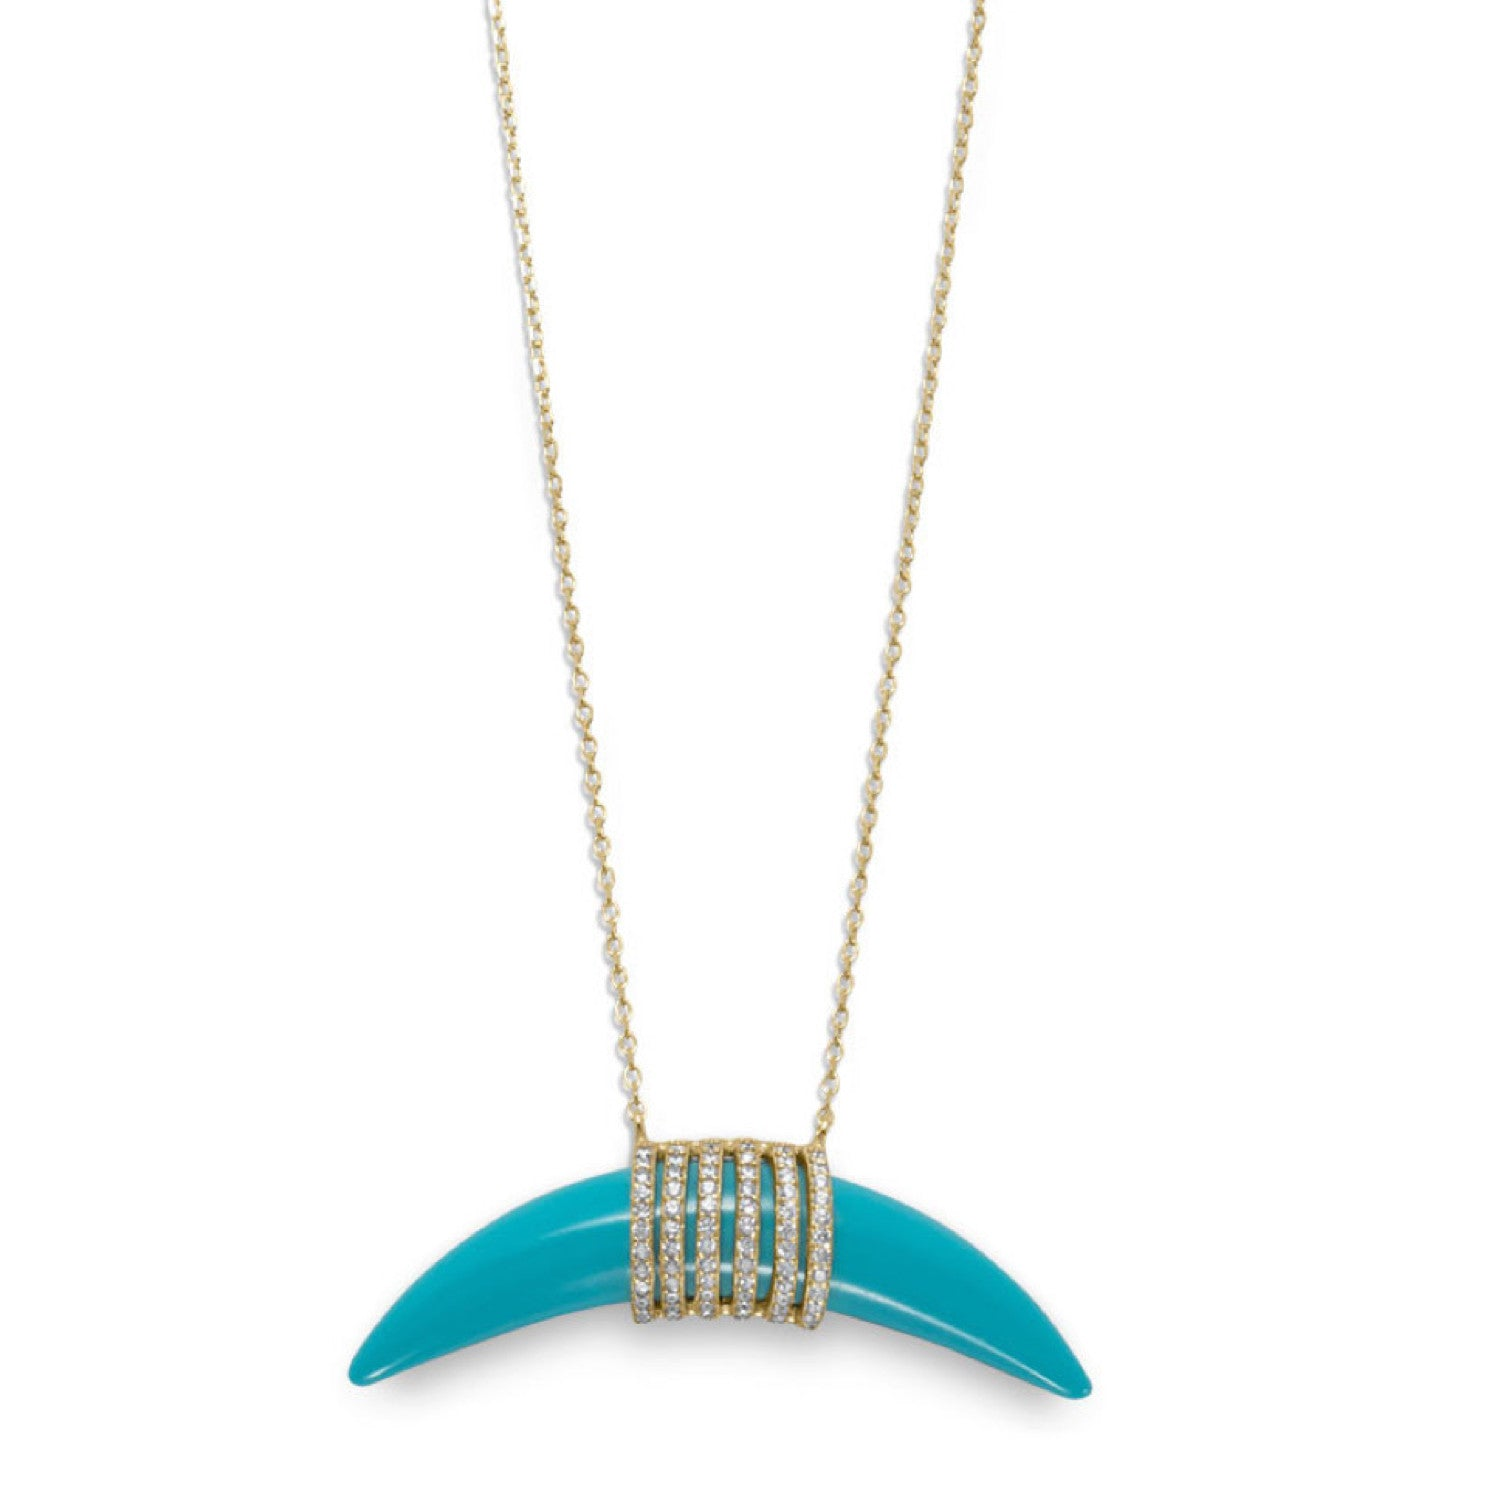 18k Gold Plated Turquoise Horn & Cz Necklace